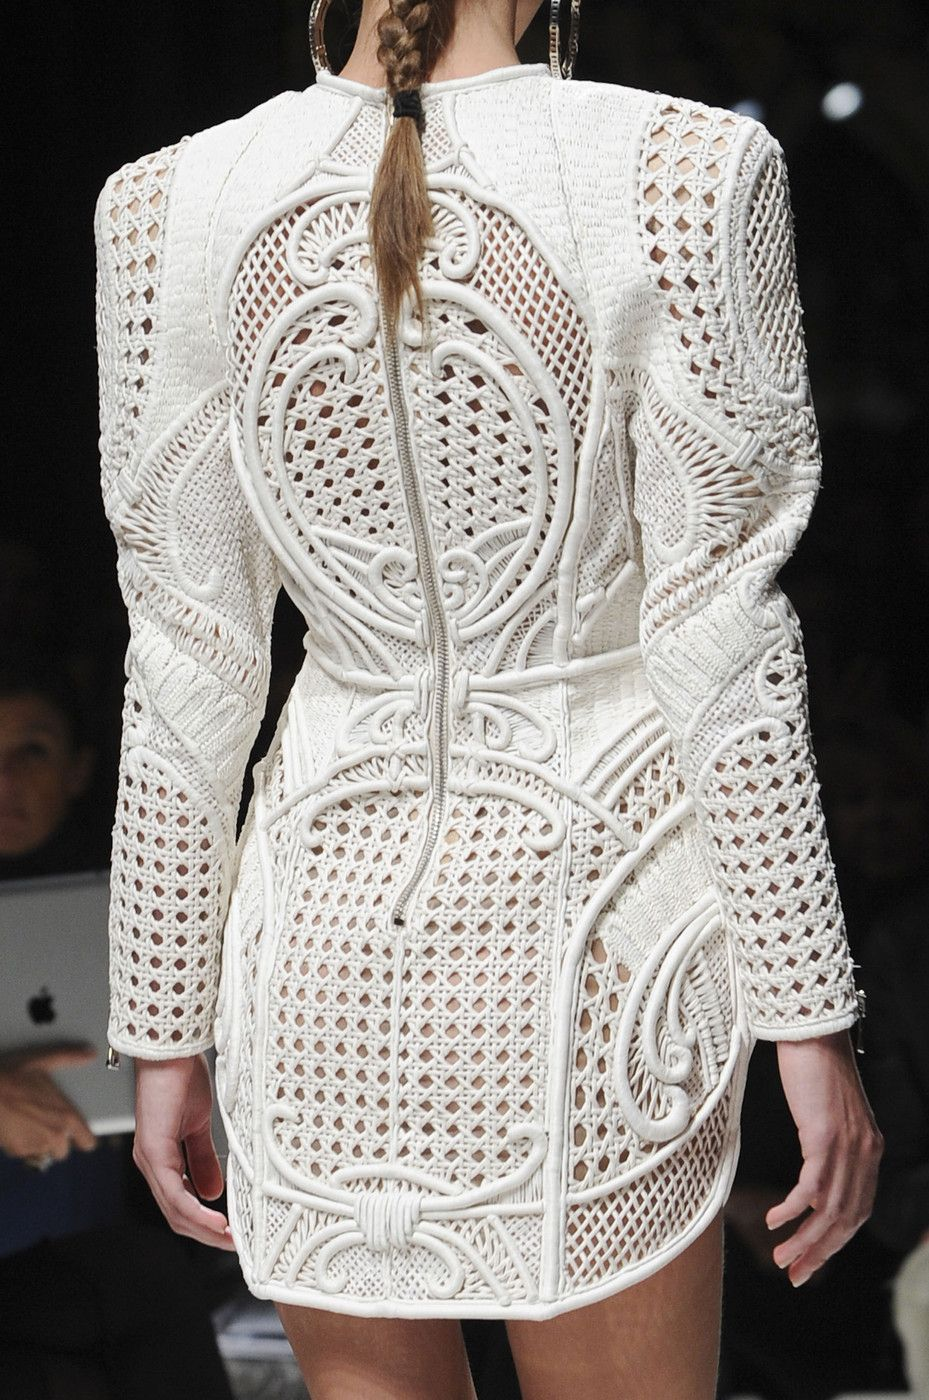 Structured Dress With Woven Panels & Ornate Patterns